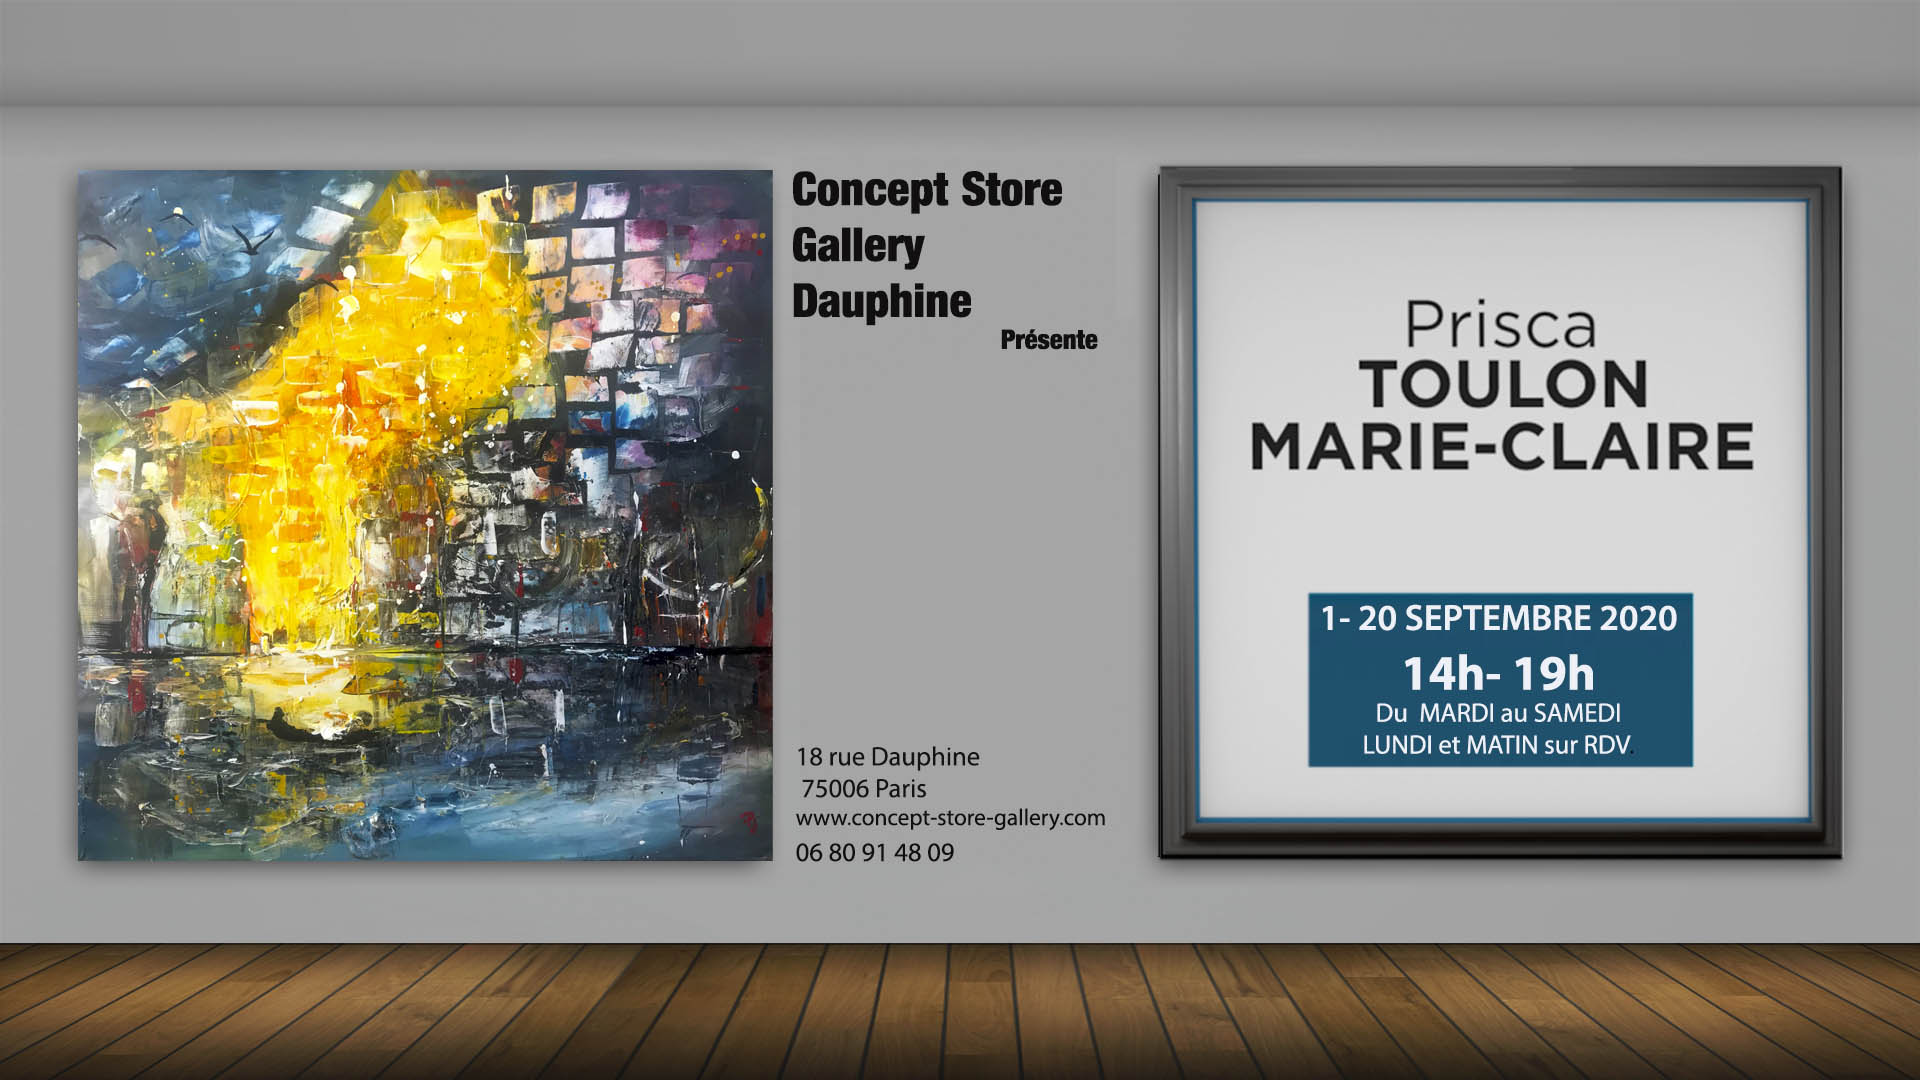 EXPO CONCEPT STORE PARIS 1 AU 20 SEPTEMB